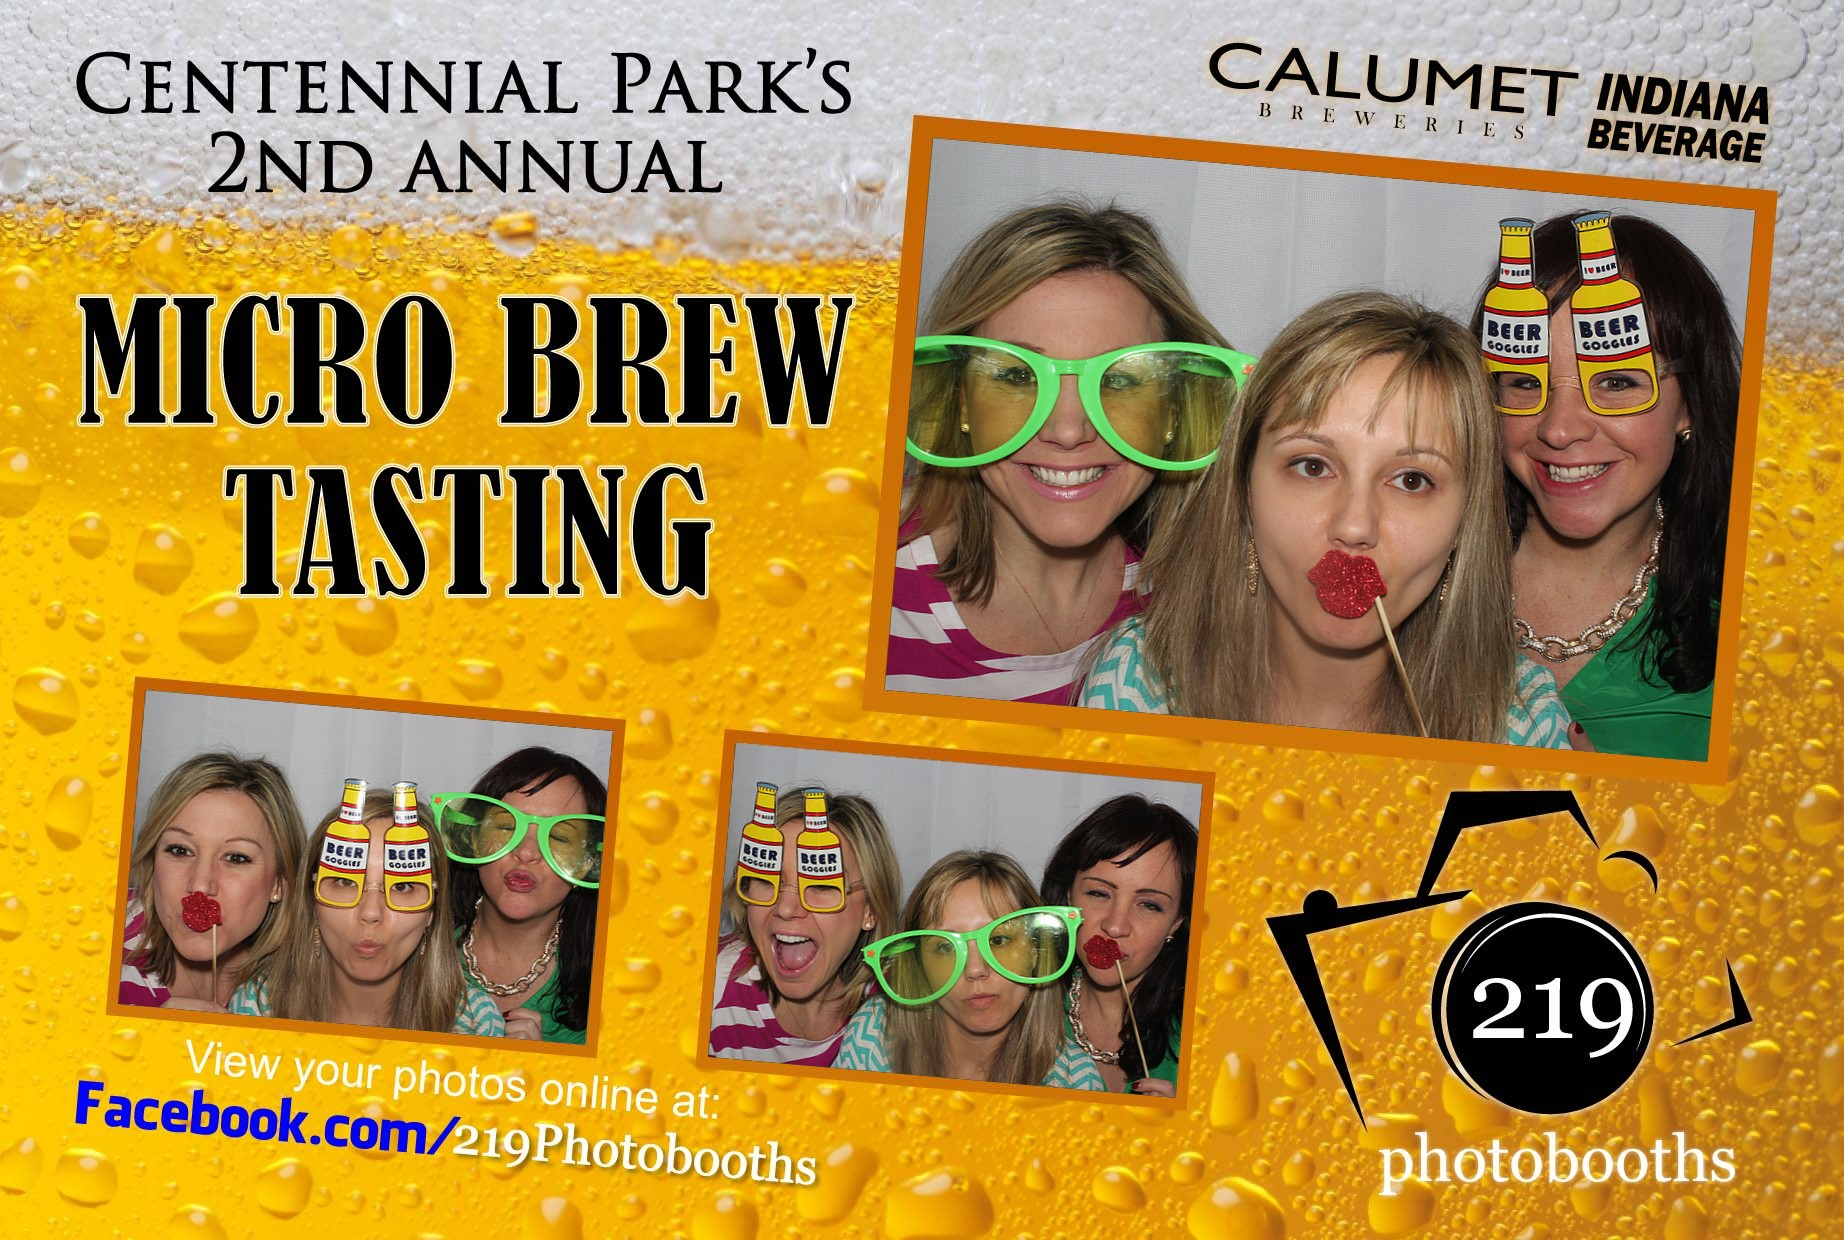 Indiana Beverage Photo Booth